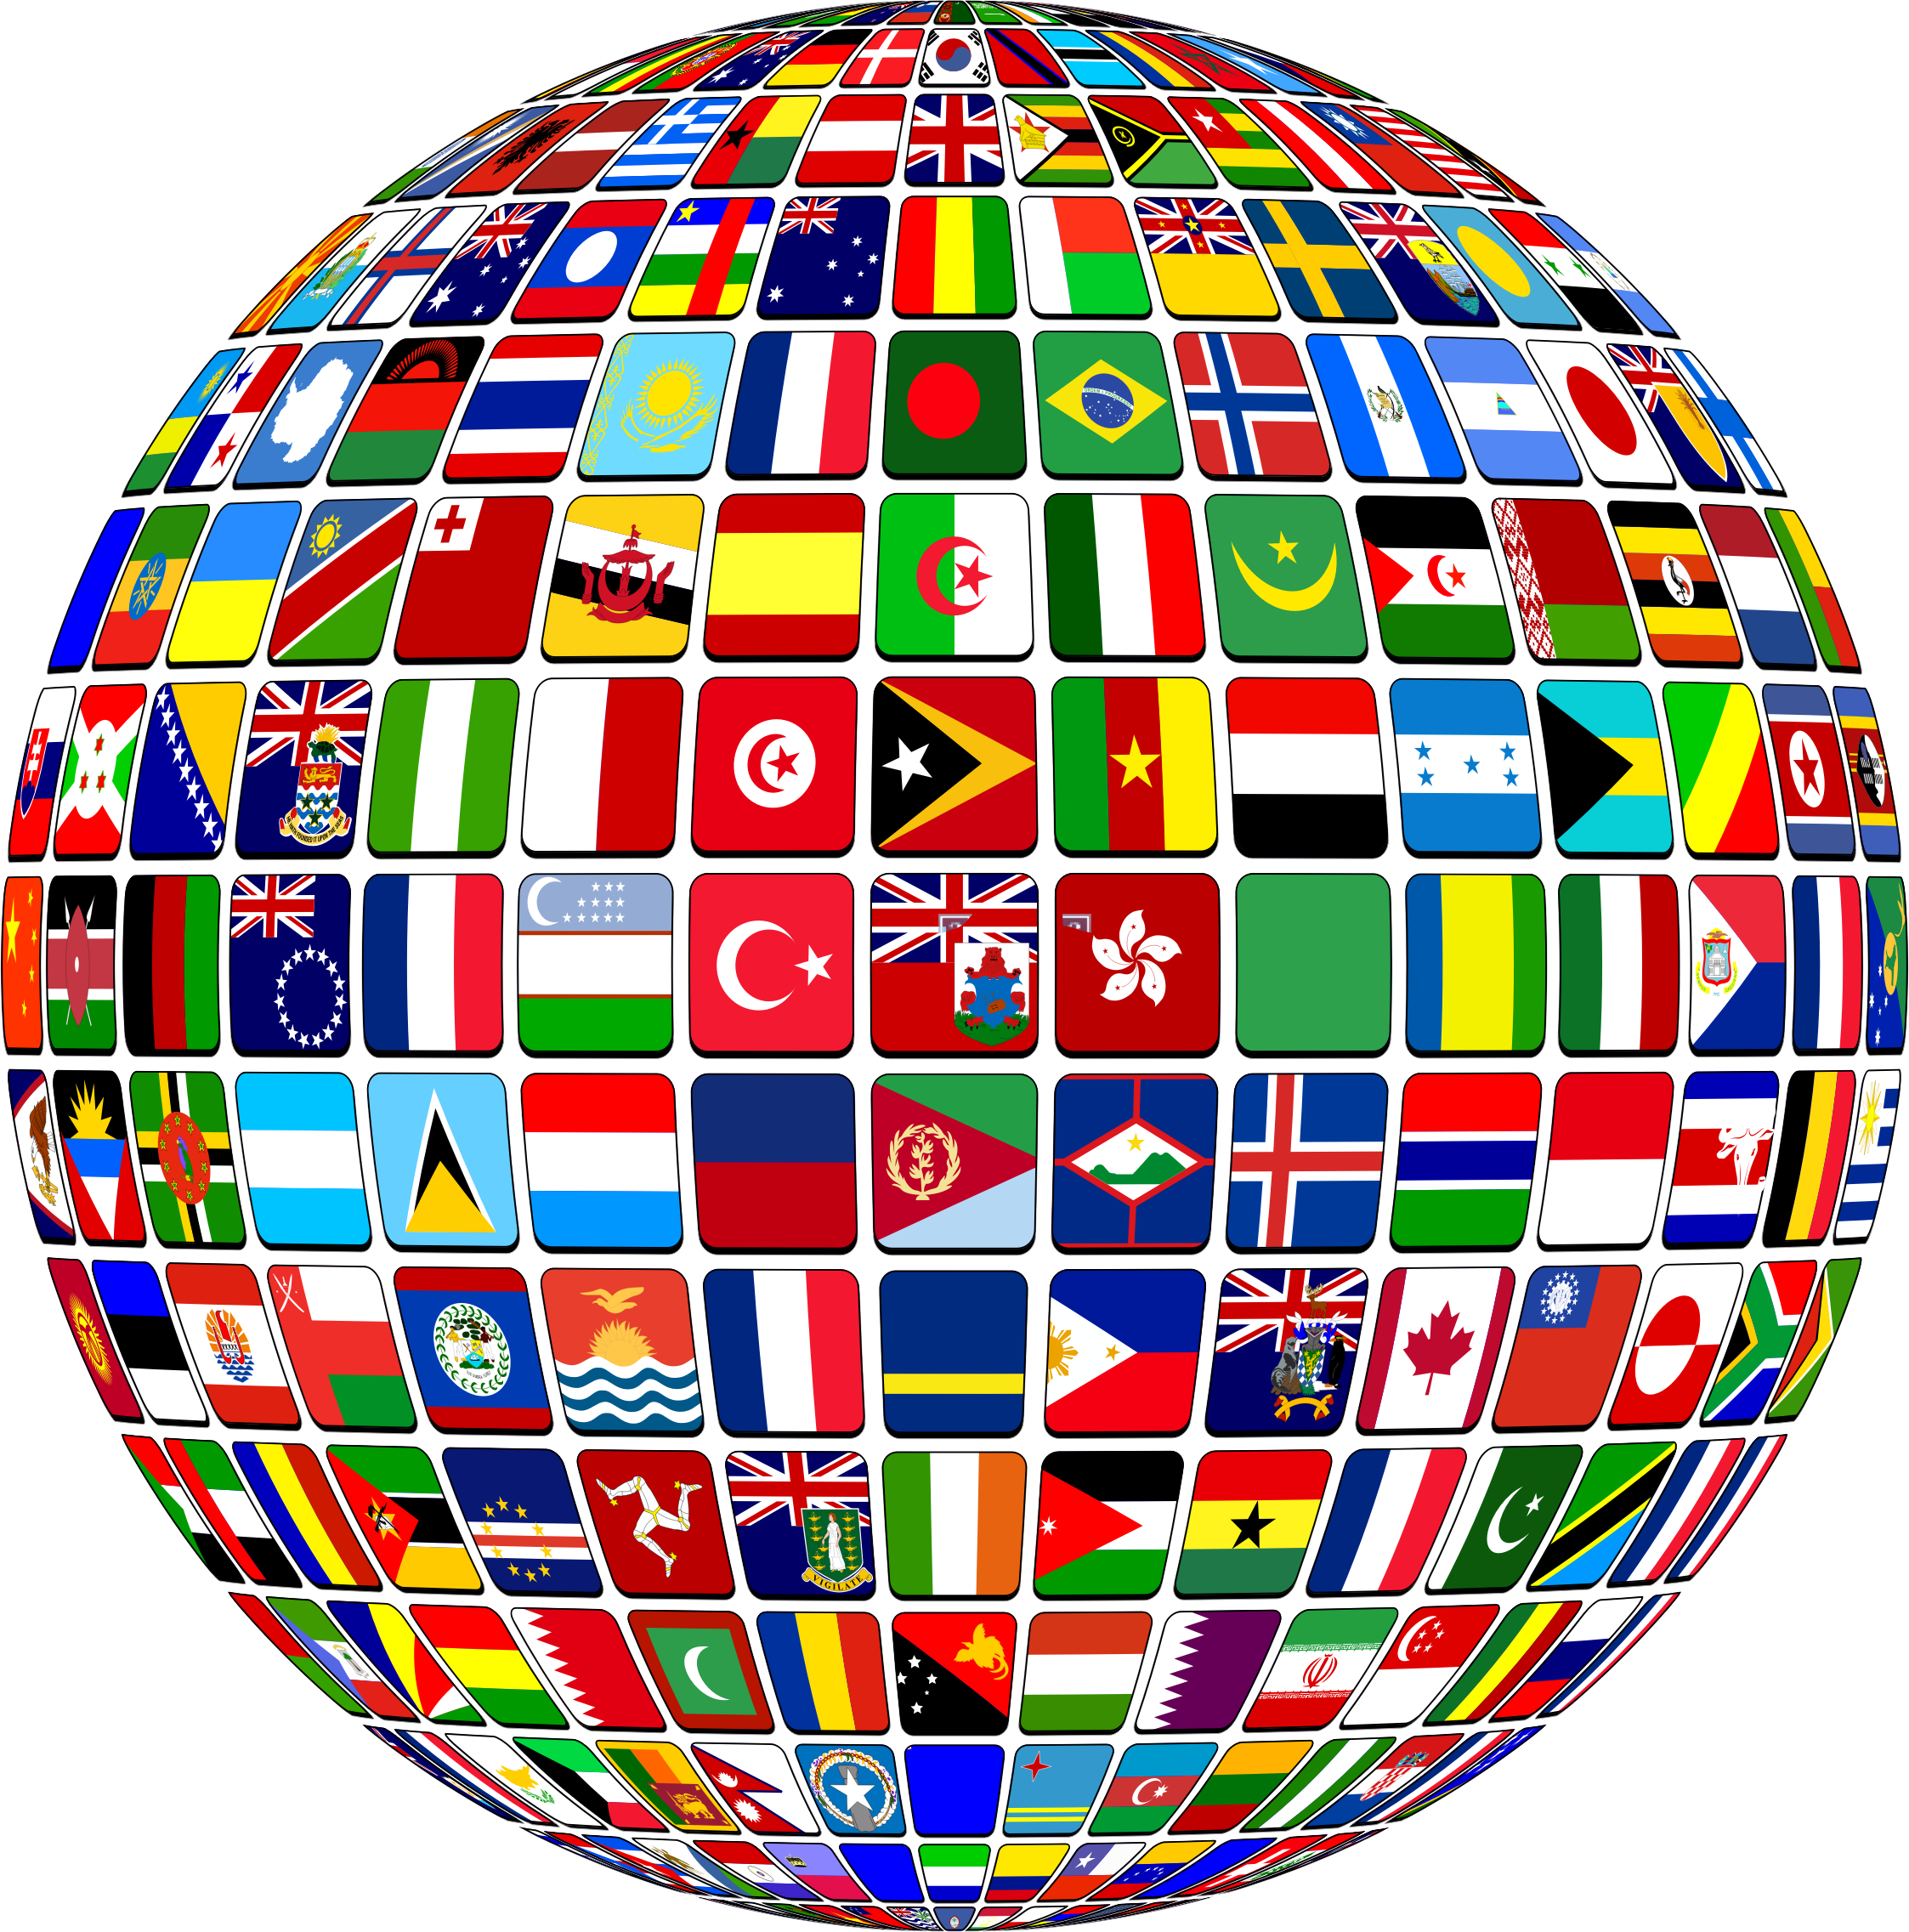 image black and white stock World buttons globe big. Mission clipart international flag.